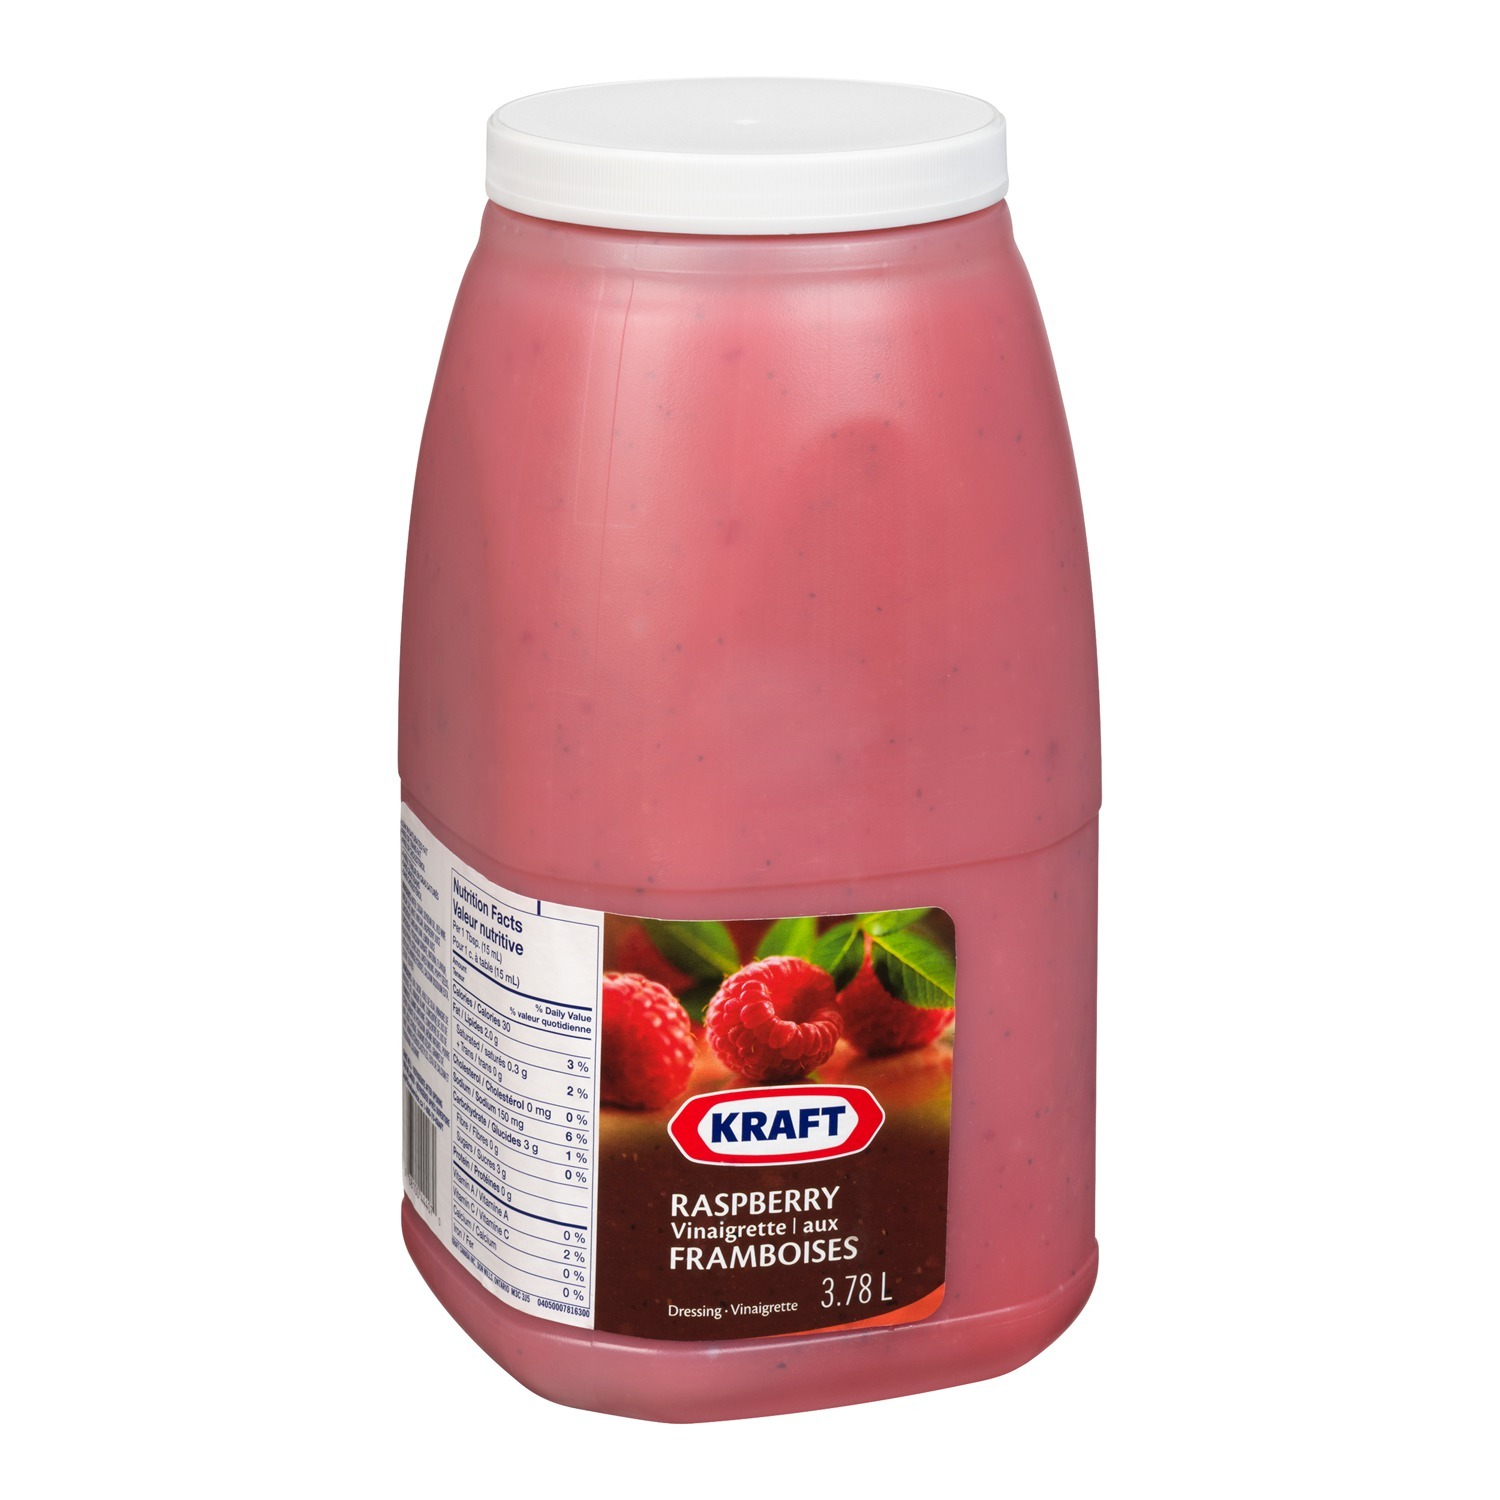 KRAFT Raspberry Dressing 3.78L 2